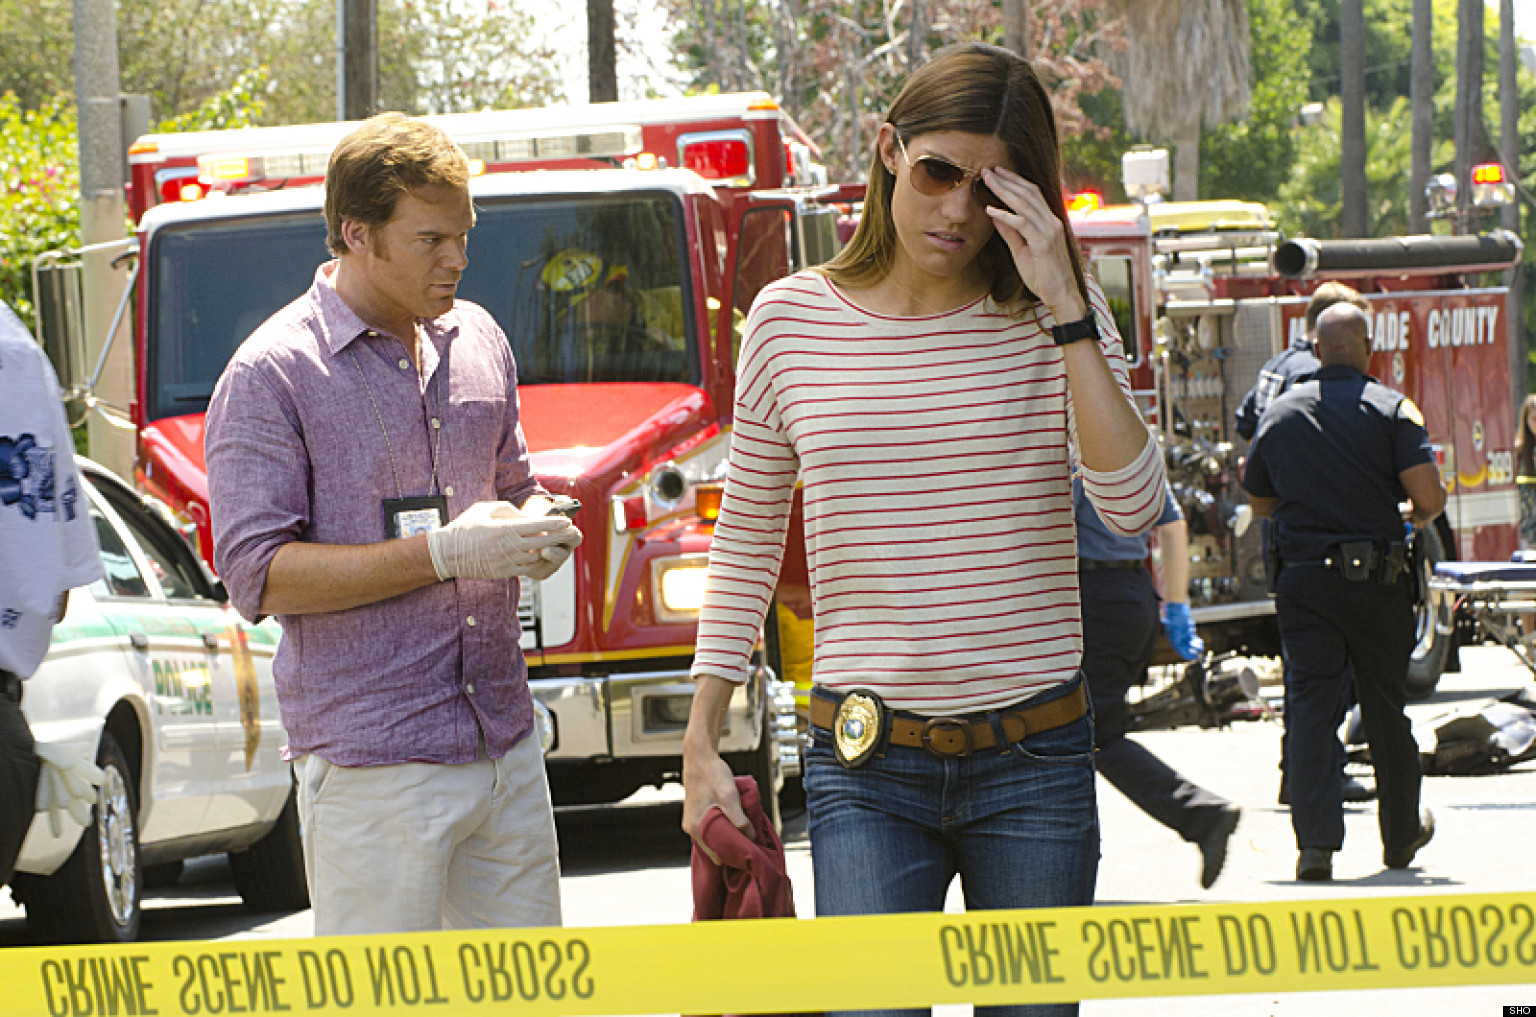 dexter season 8 preview gives glimpse of possible deb